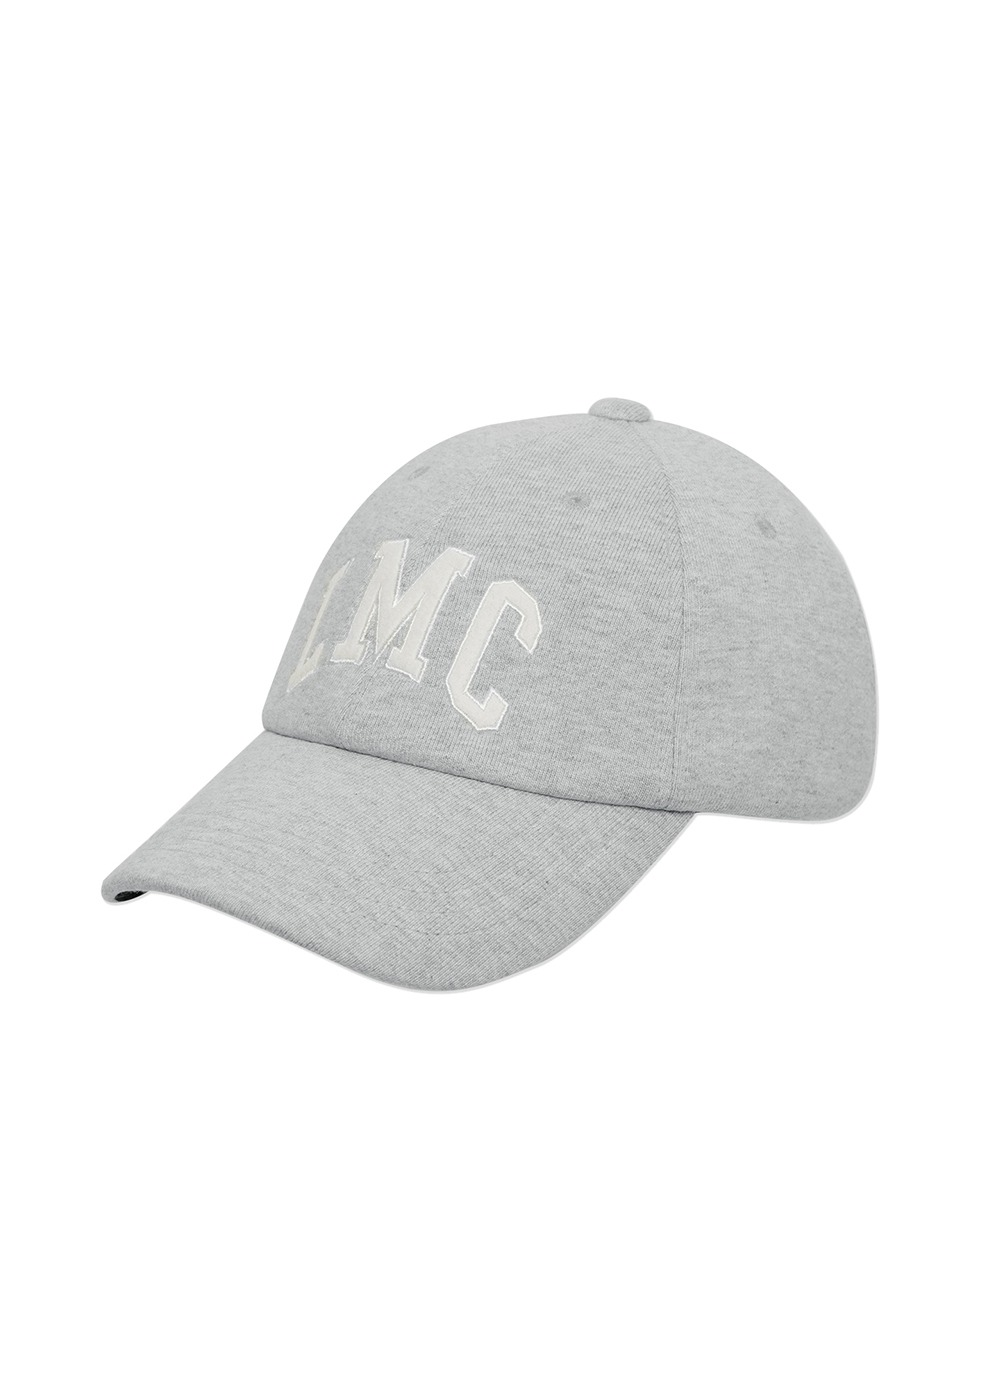 LMC ARCH SWEAT 6 PANEL CAP heather gray